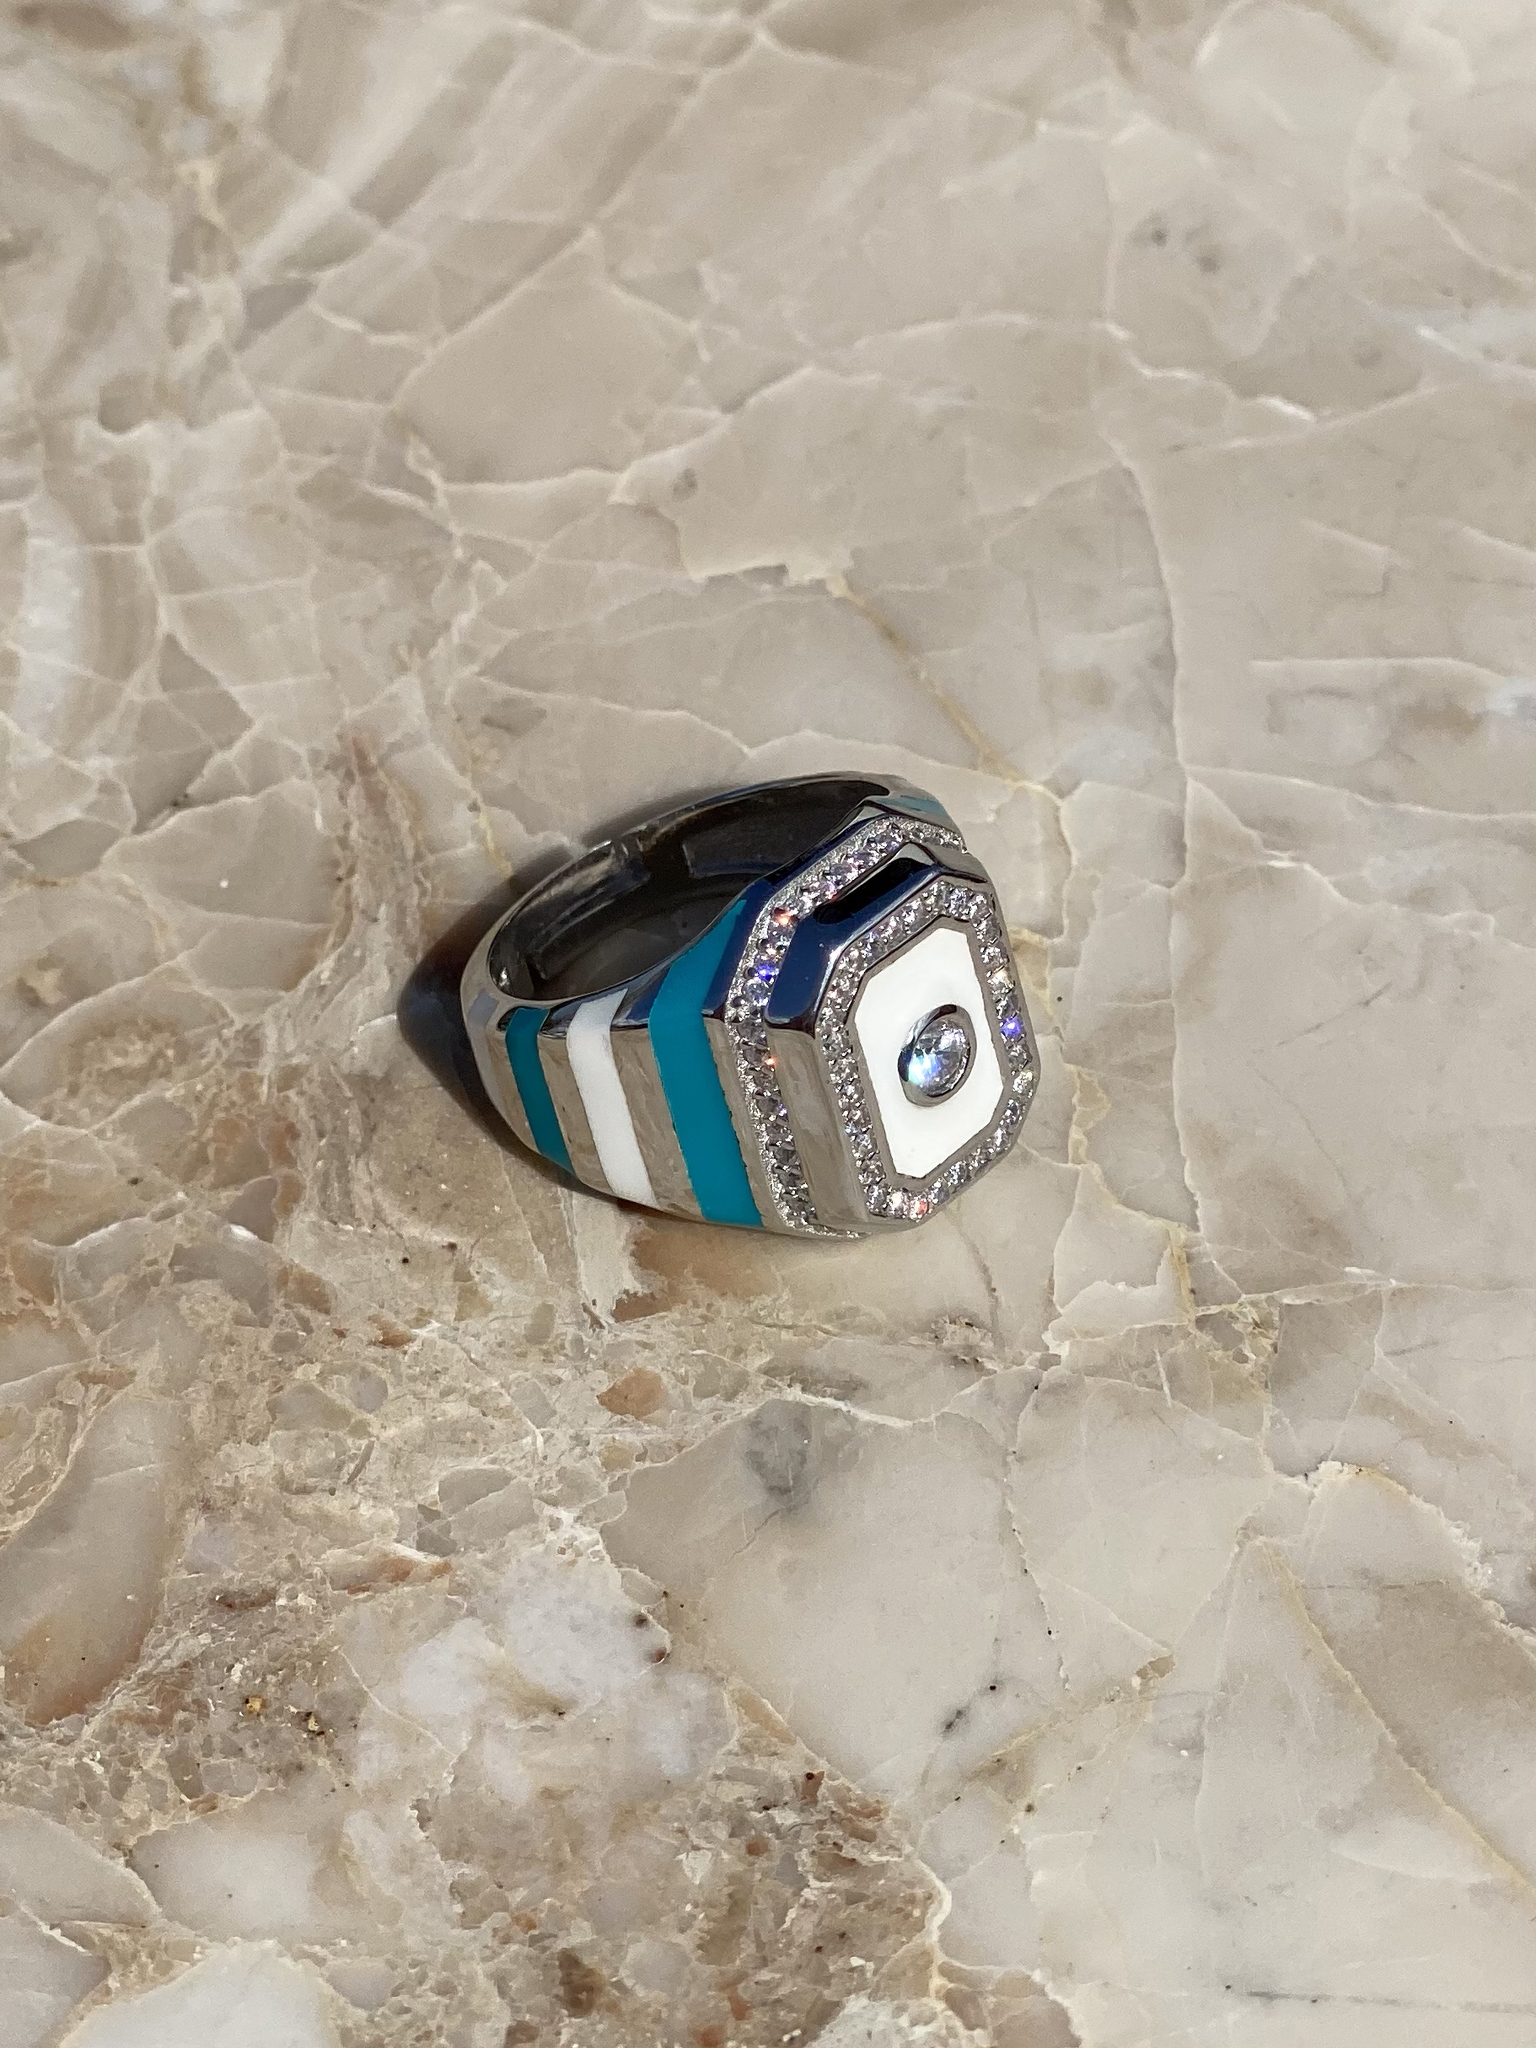 Signet ring in silver with light blue and white enamel stripes